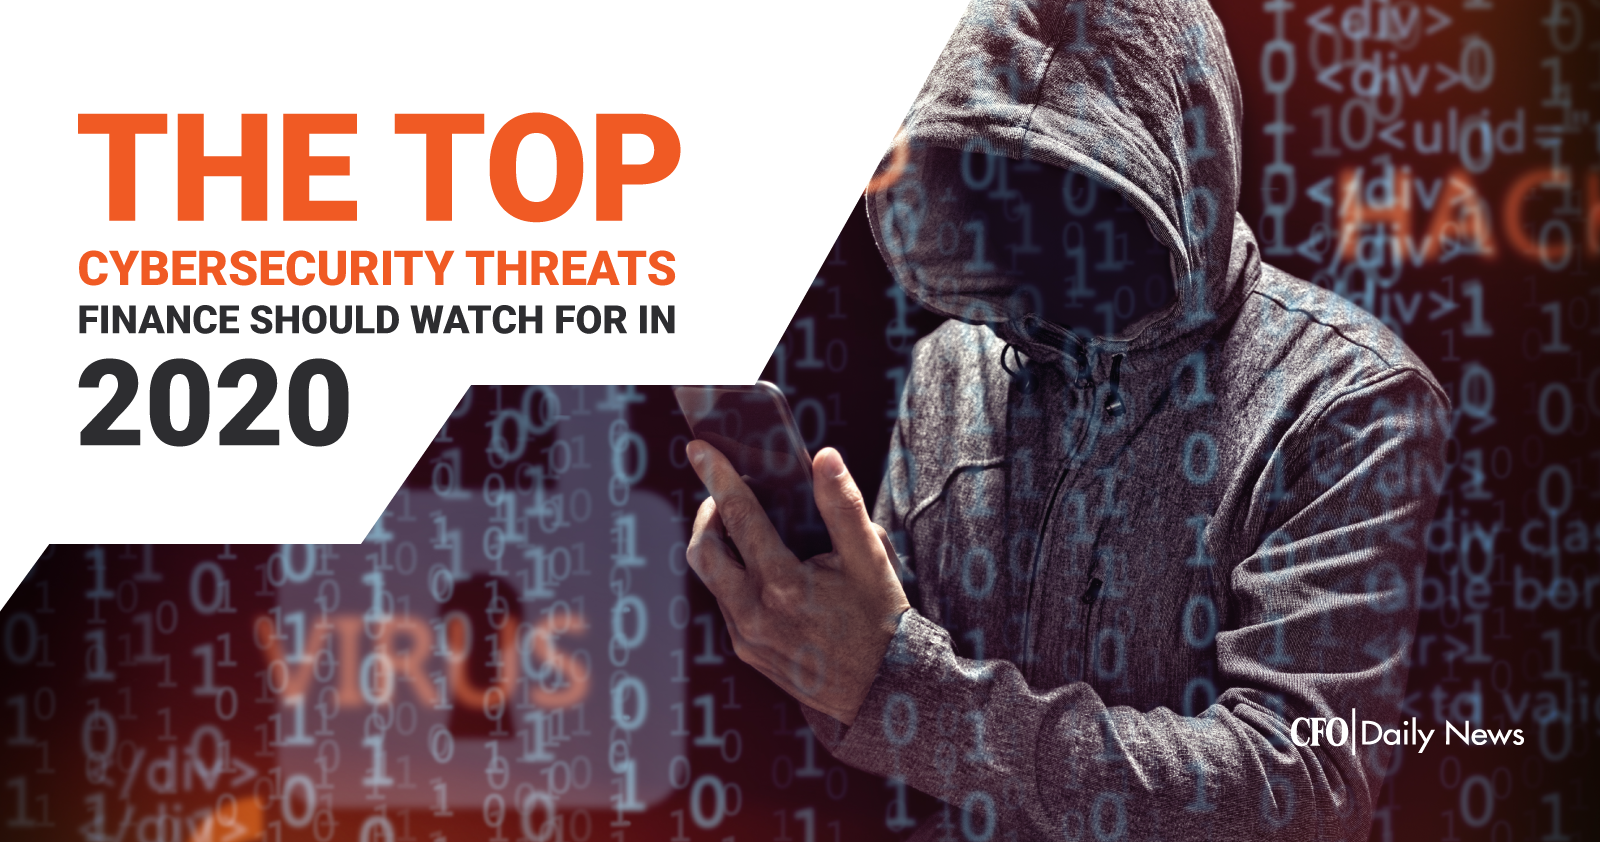 The Top Cybersecurity Threats Finance Needs to Watch out for